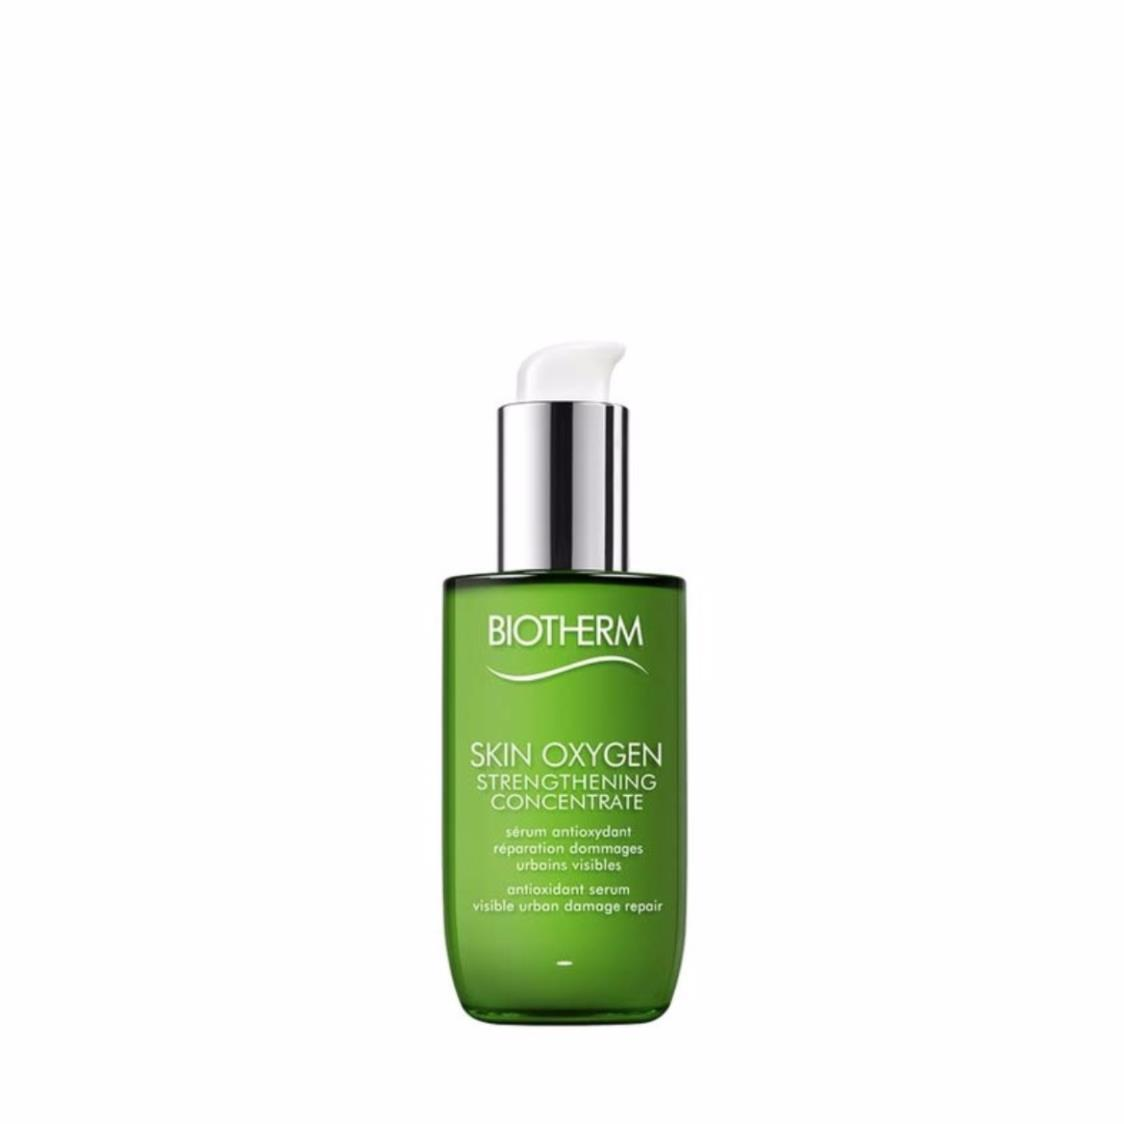 Skin Oxygen Strengthening Concentrate 50ml